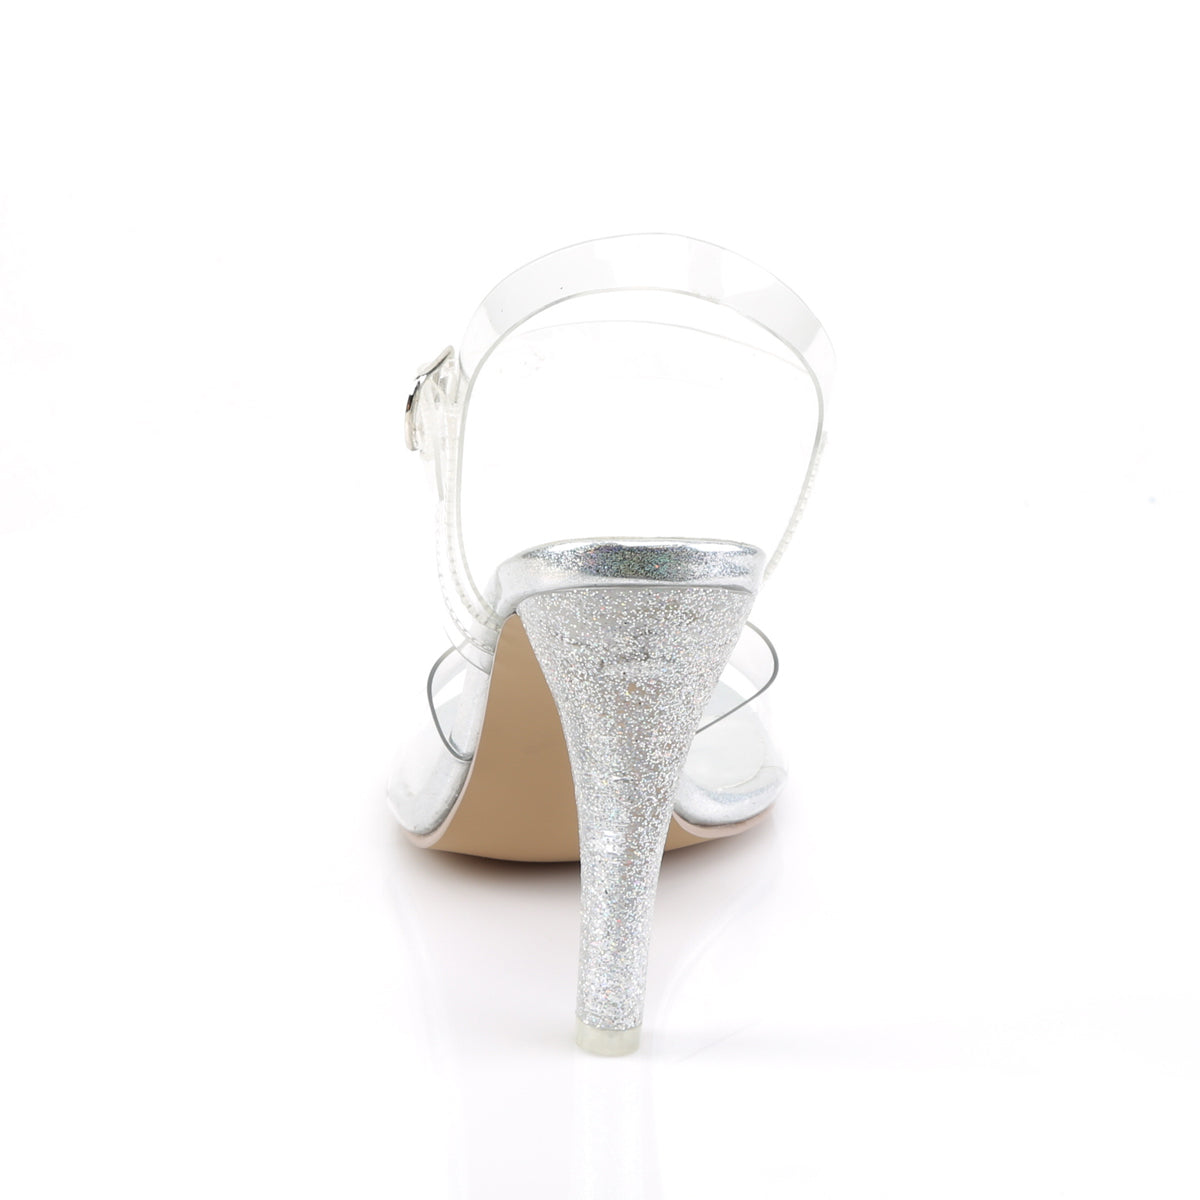 16491a70dbc CLEARLY-408MG Fabulicious Sexy Shoes 4 1 2 Inch Heel Glitter ...